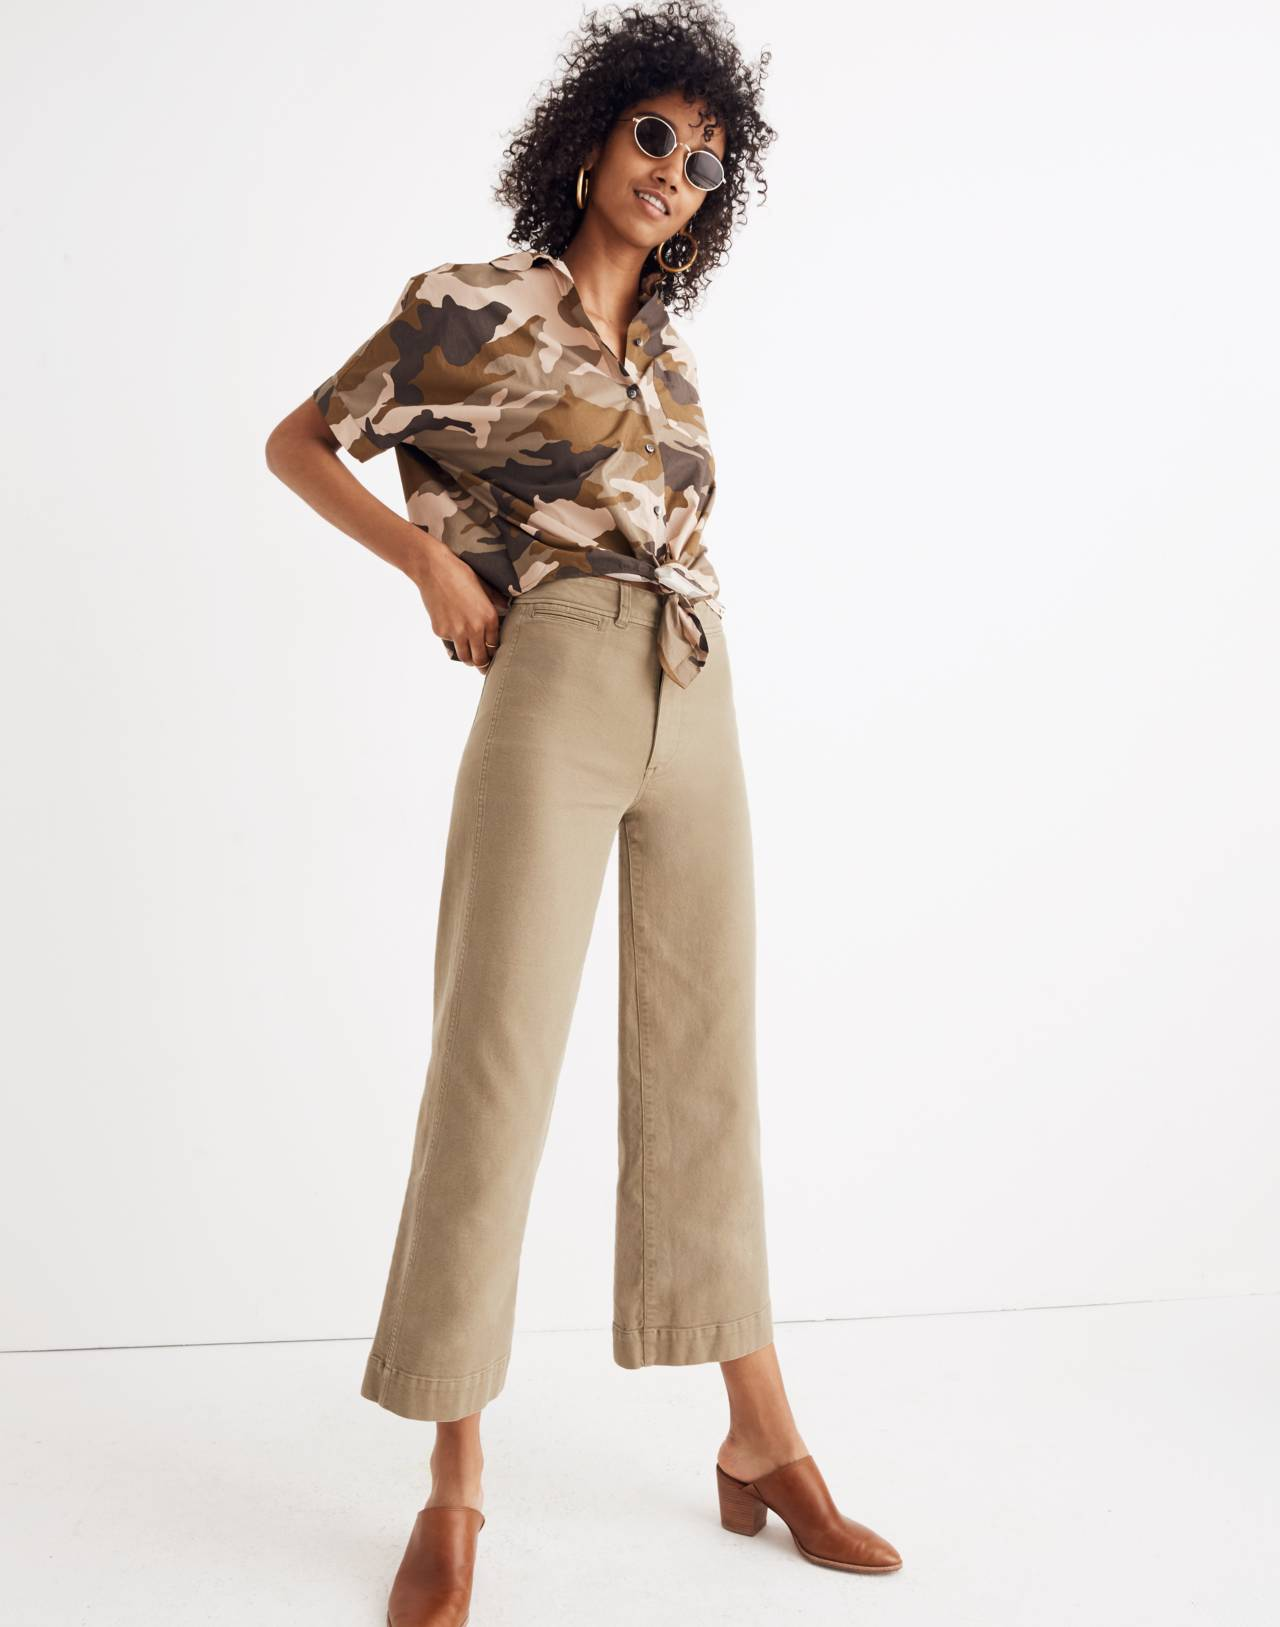 Short-Sleeve Tie-Front Shirt in Cottontail Camo in bunny camo asparagus image 2